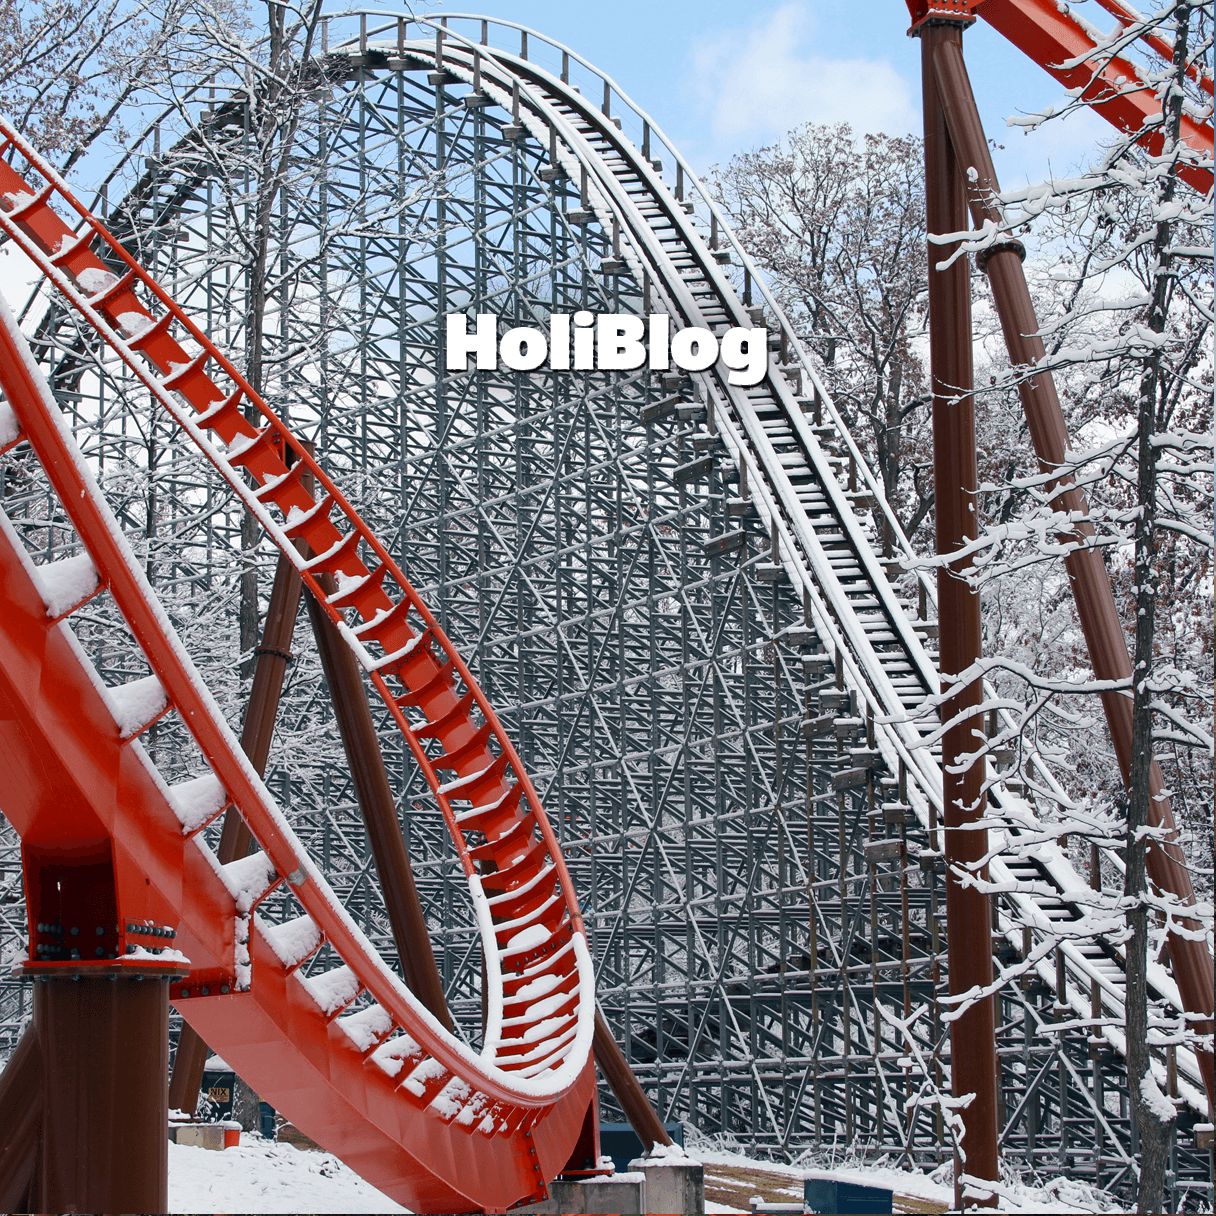 Snow on the coasters